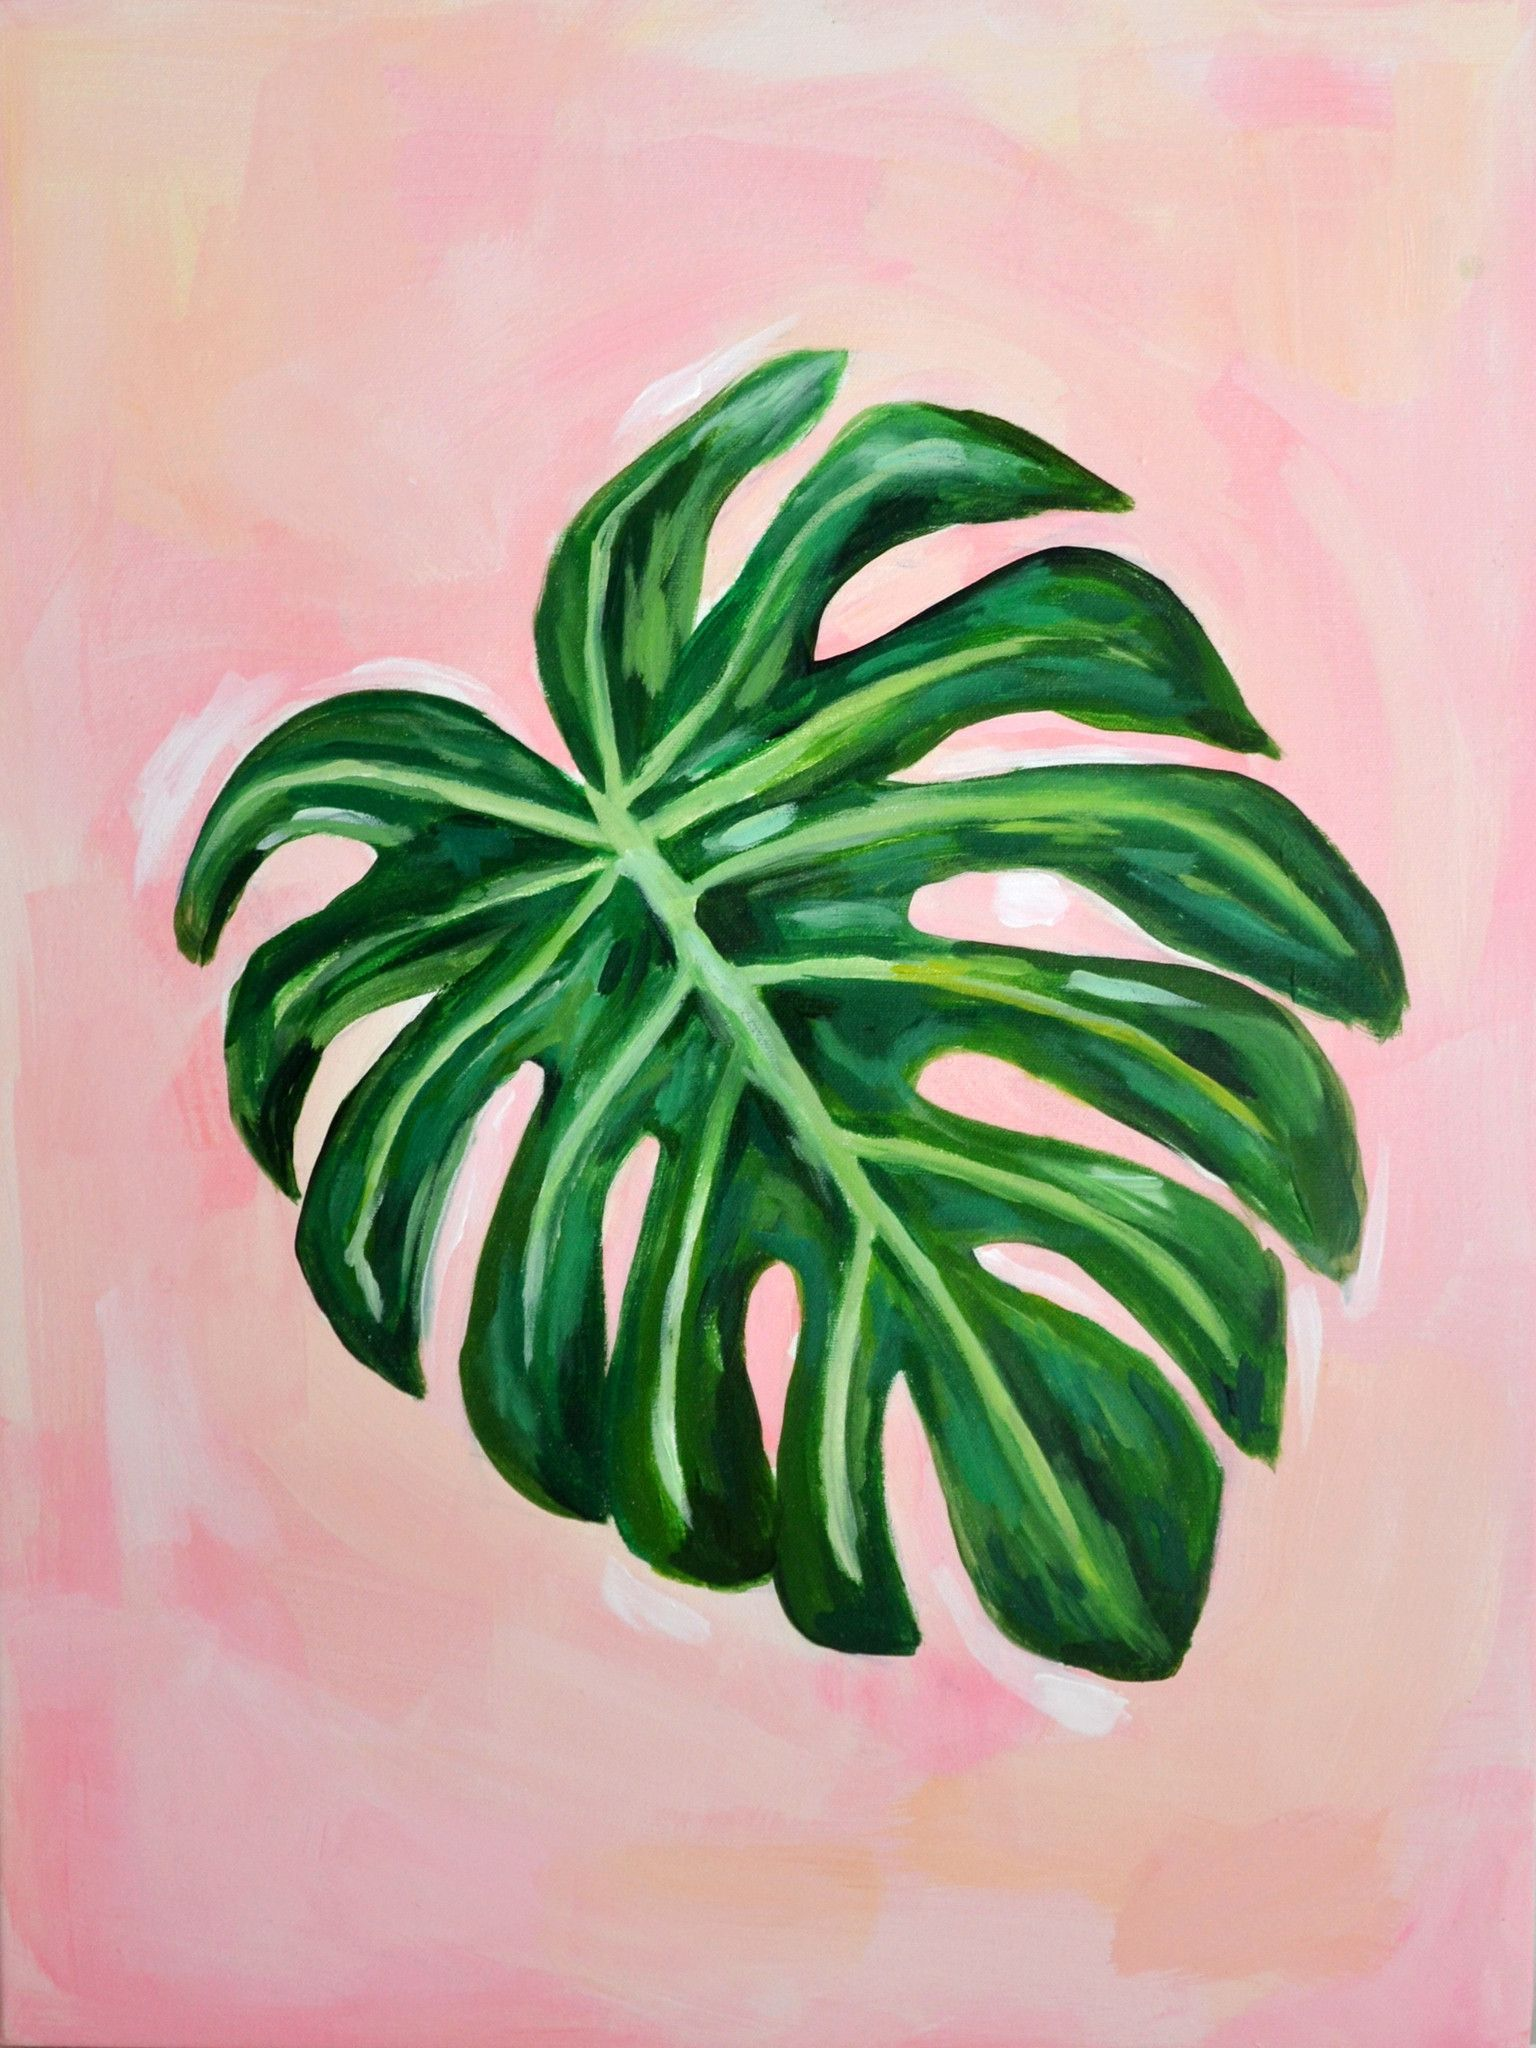 Blushing Tropical Leaf 1 Canvas Painting Diy Flower Painting Canvas Canvas Painting Tutorials Finish the leaves and tropical flowers with smaller brush and black paint. pinterest